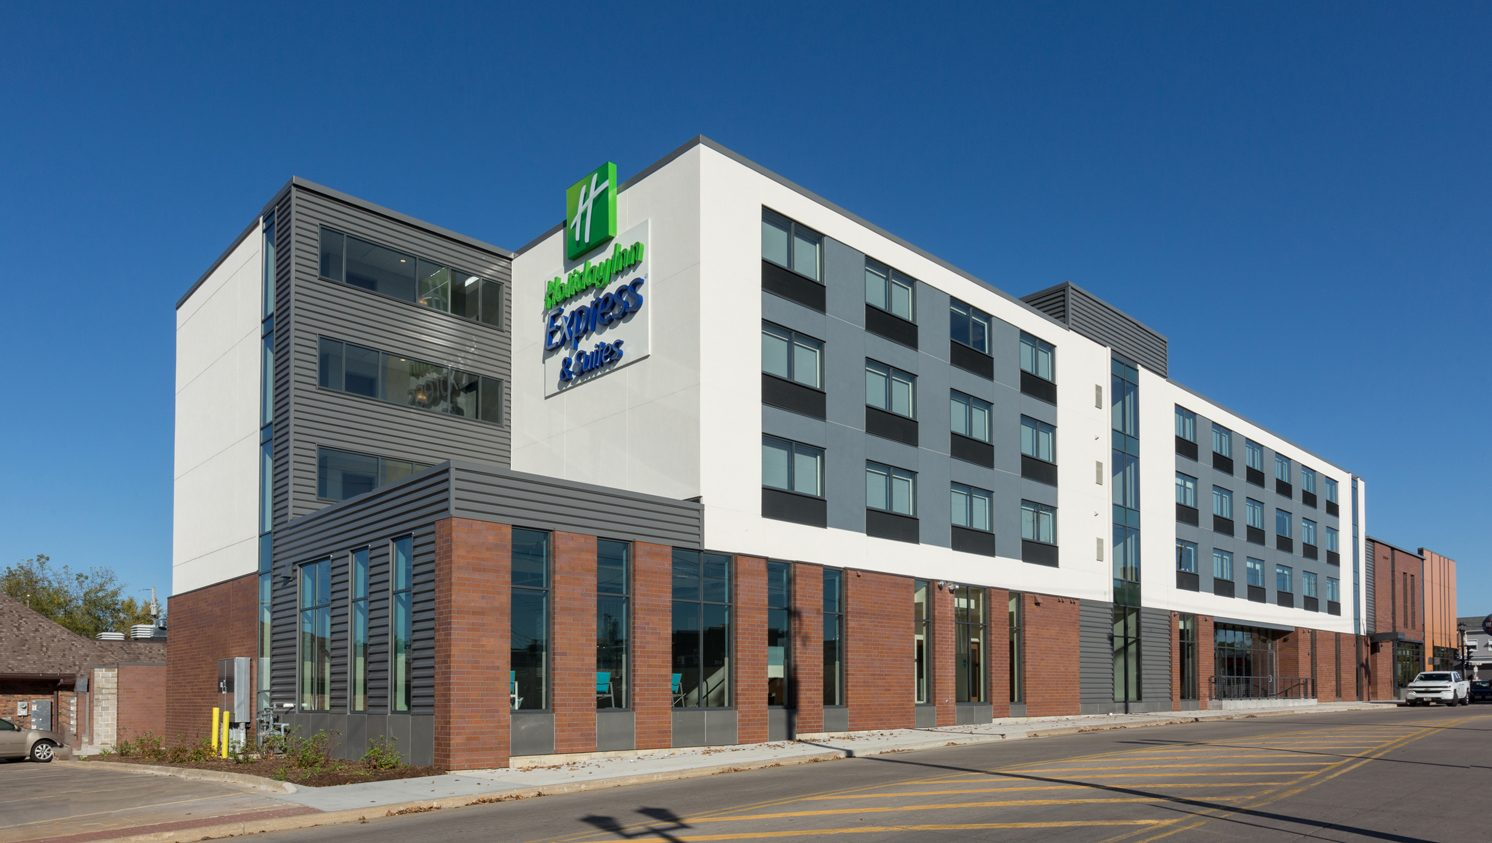 exterior view of the Holiday Inn Express in Platteville